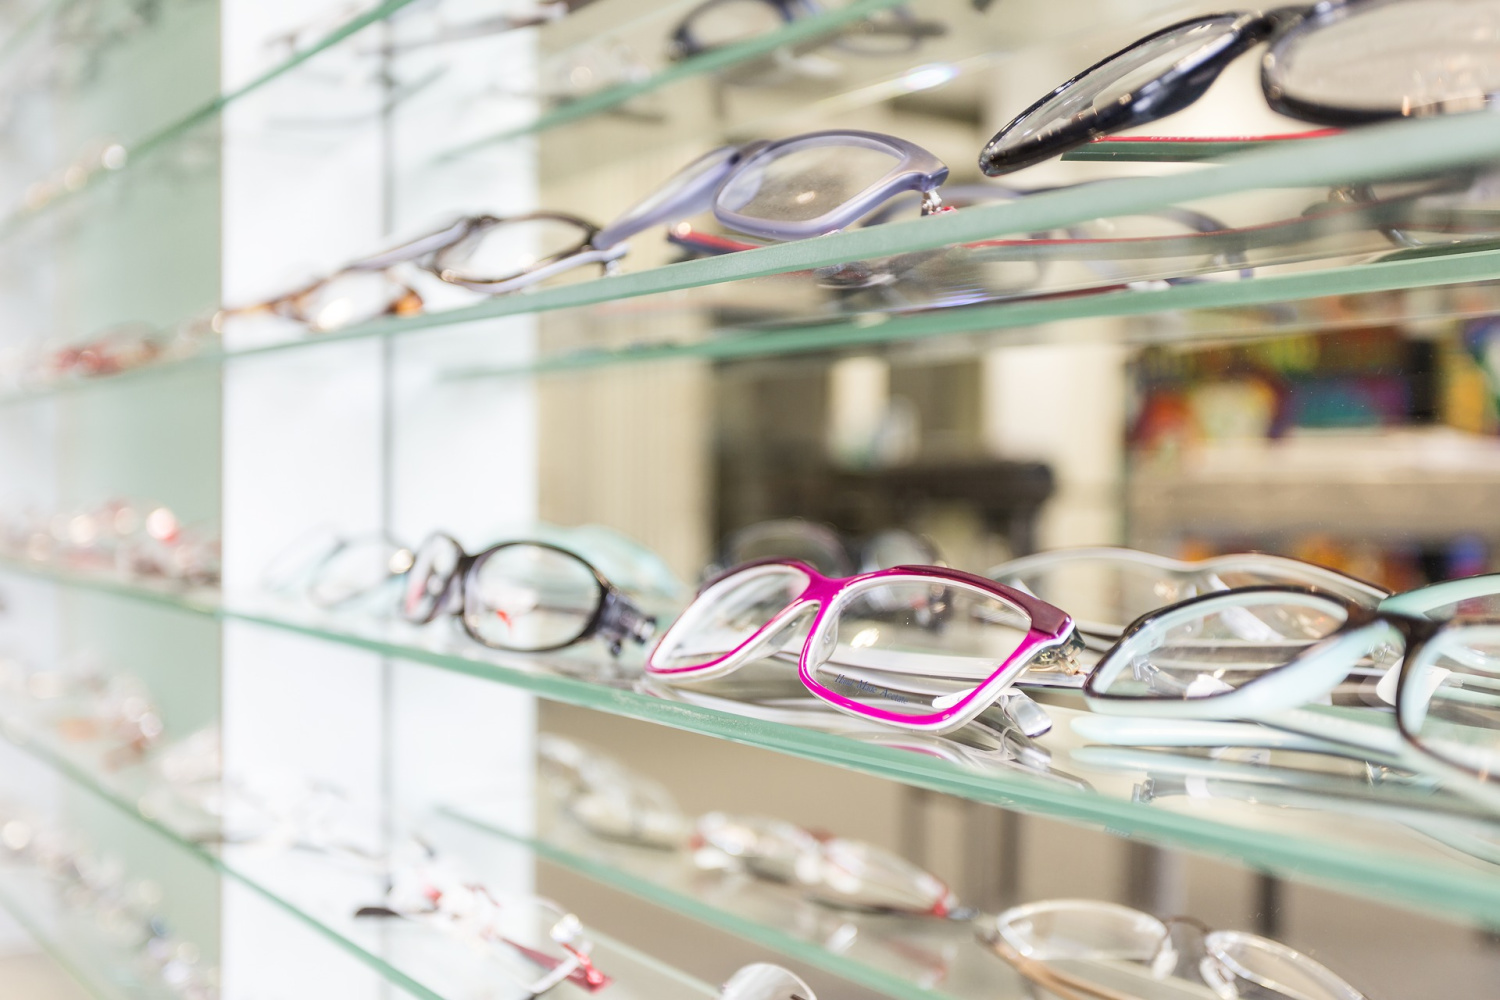 display of glasses showing the differences between men's and women's eyeglasses